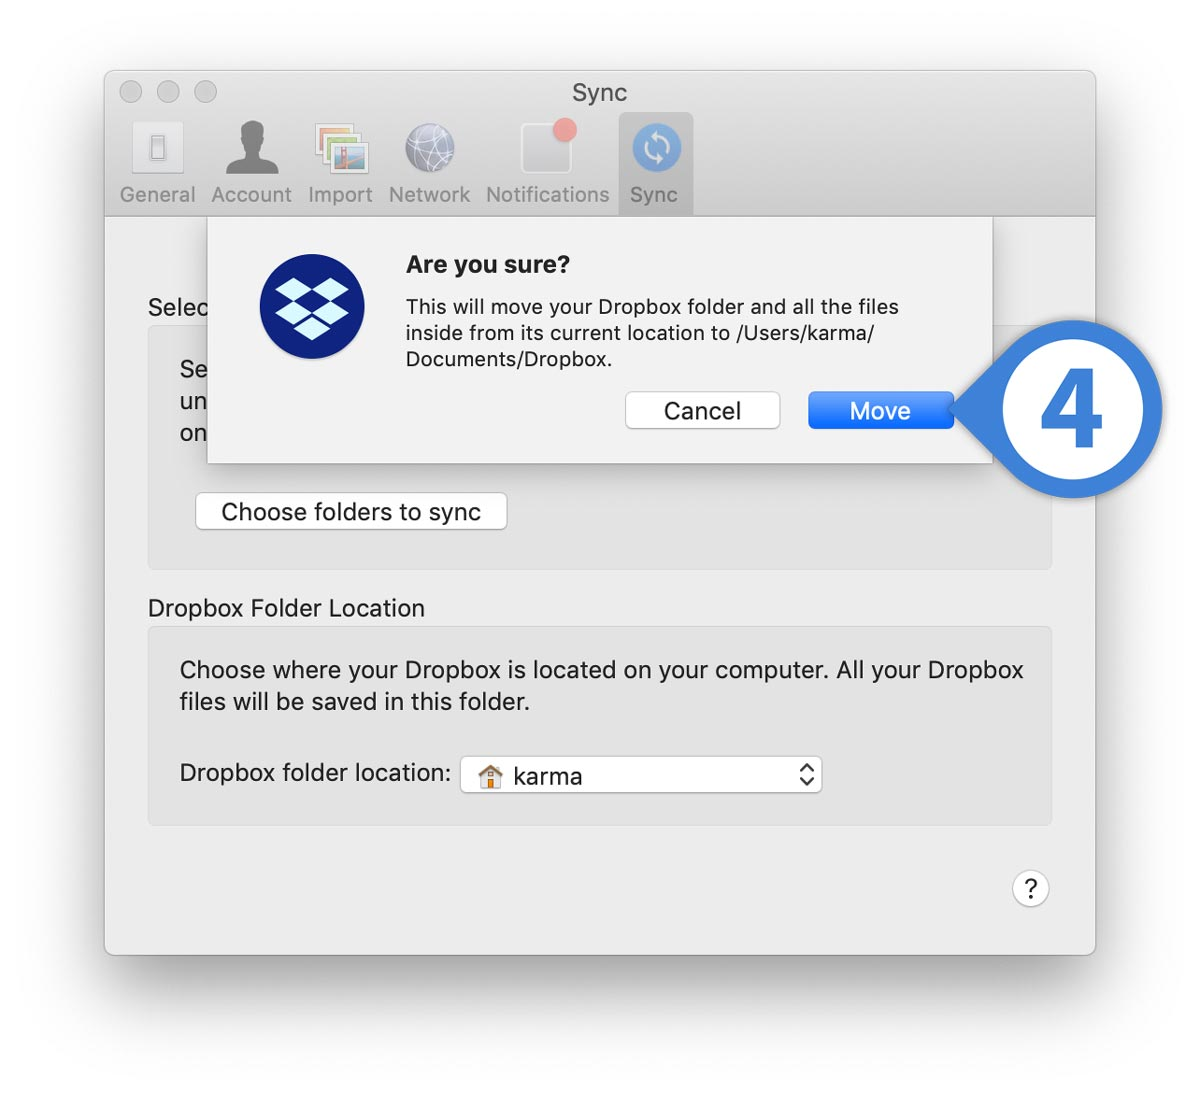 How to Change the Dropbox Folder Location on the Mac